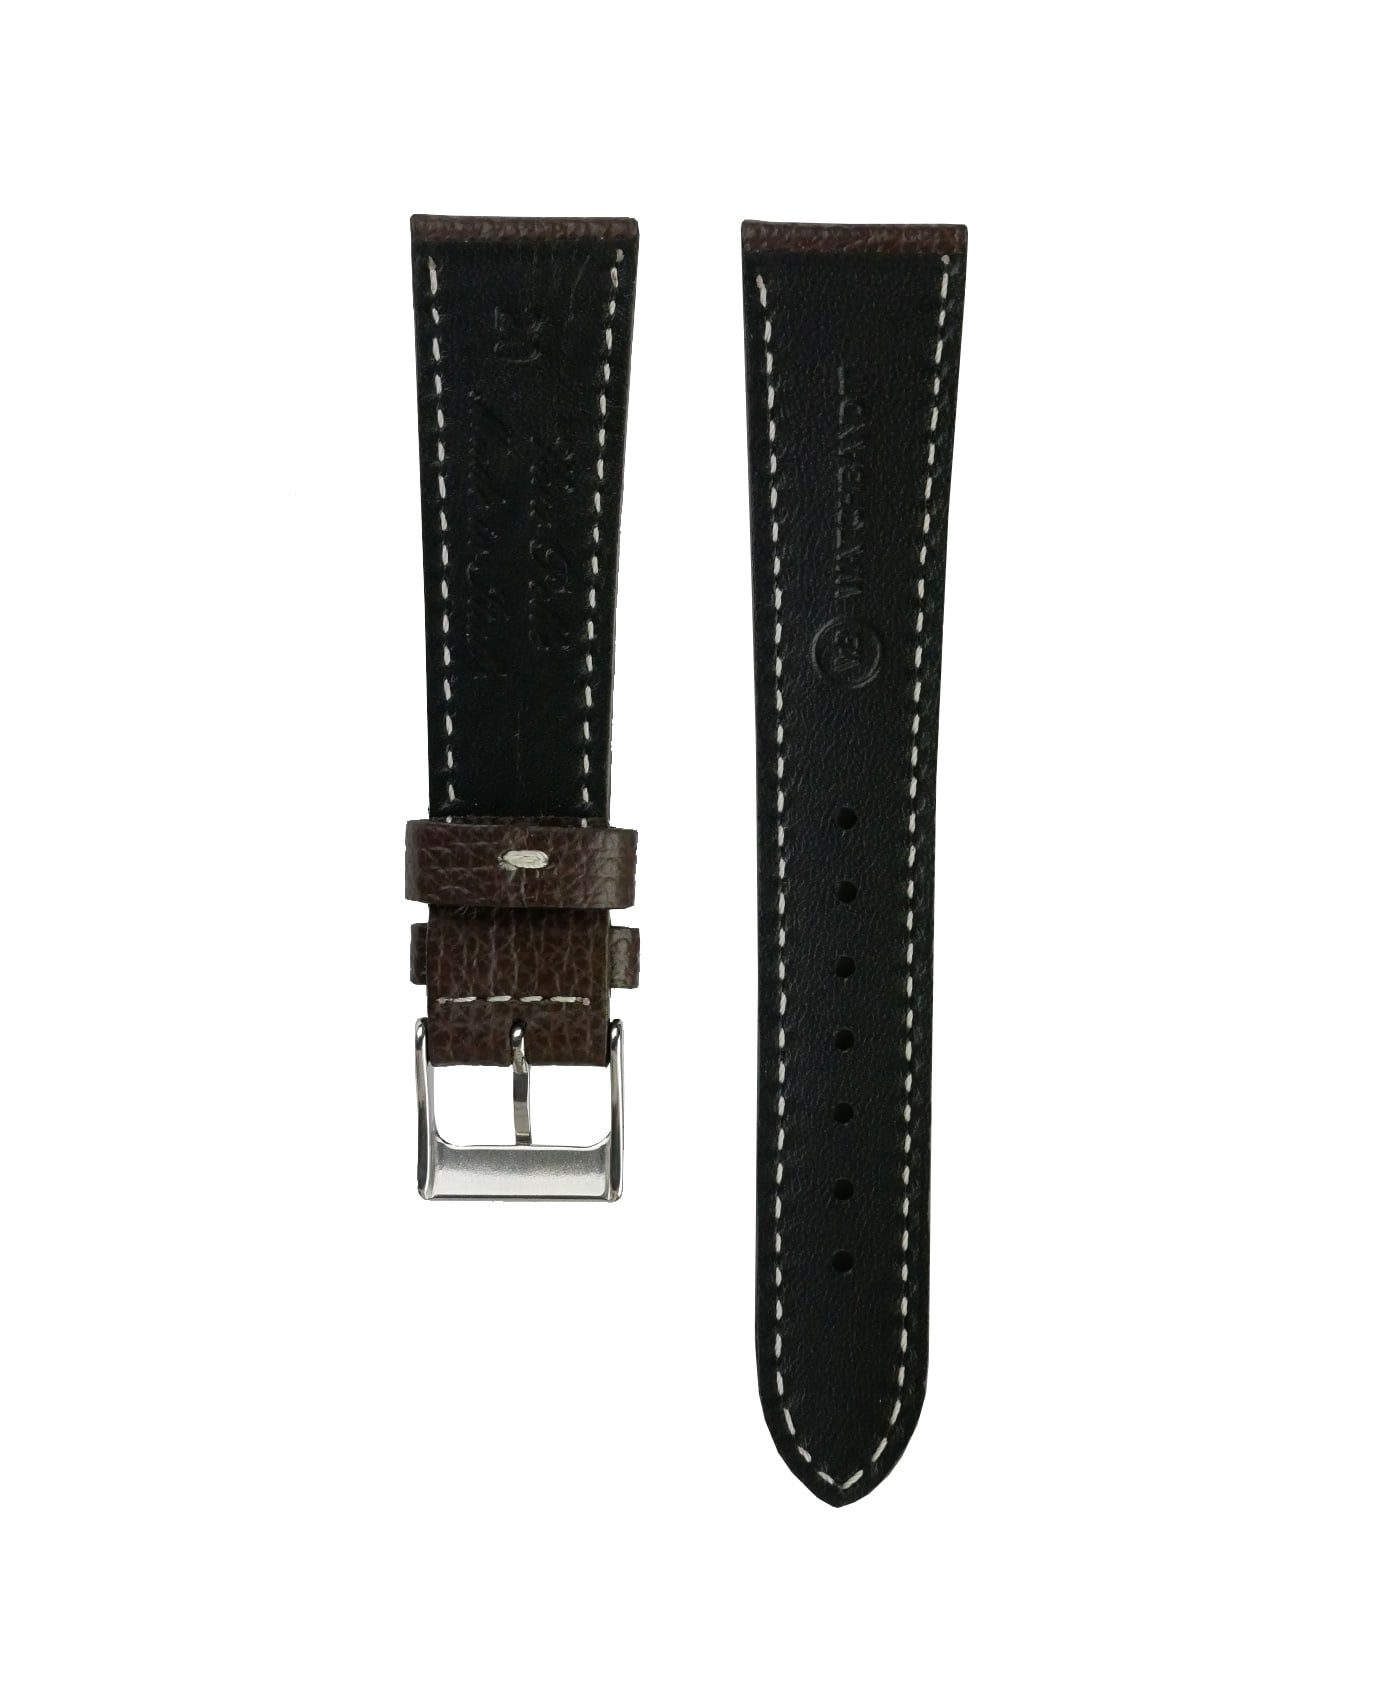 Textured calfskin leather watch strap dark brown back watchbandit